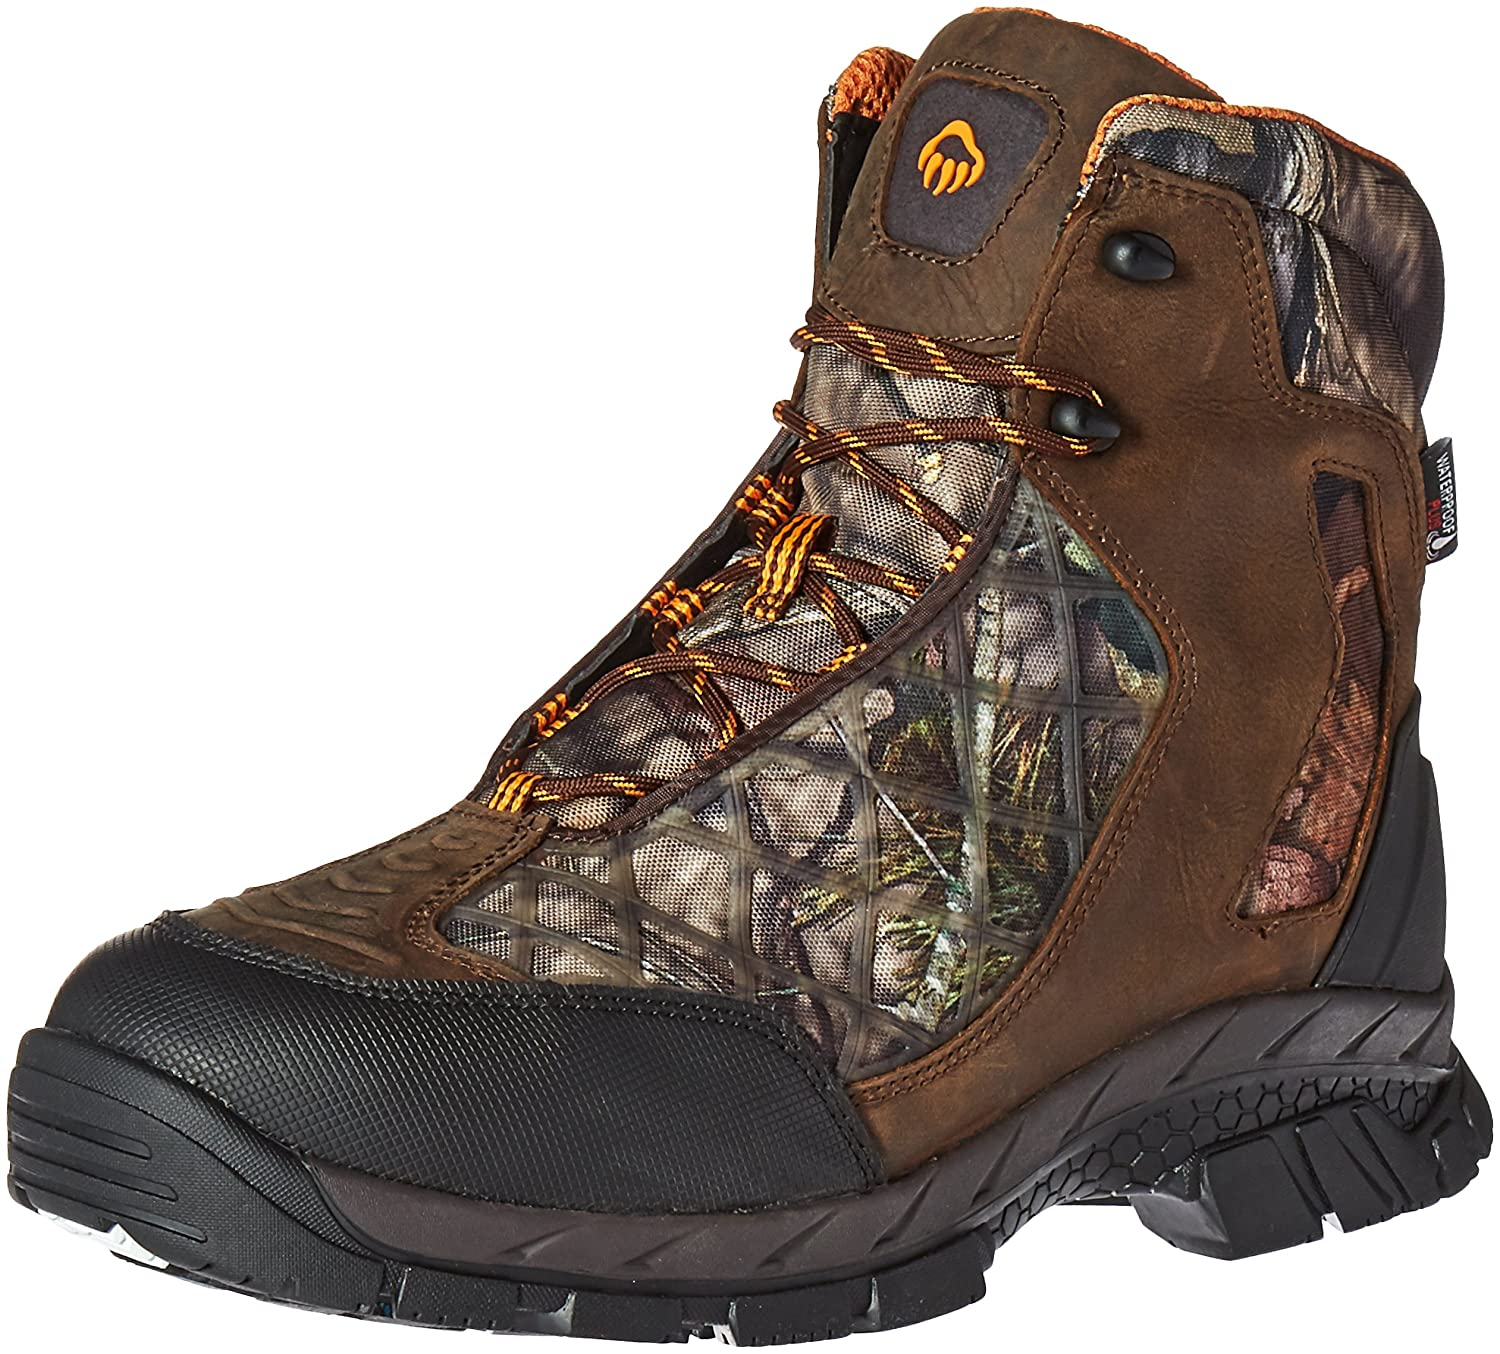 Wolverine メンズ B019WDOCYU 10 D(M) US|Brown/Realtree Brown/Realtree 10 D(M) US